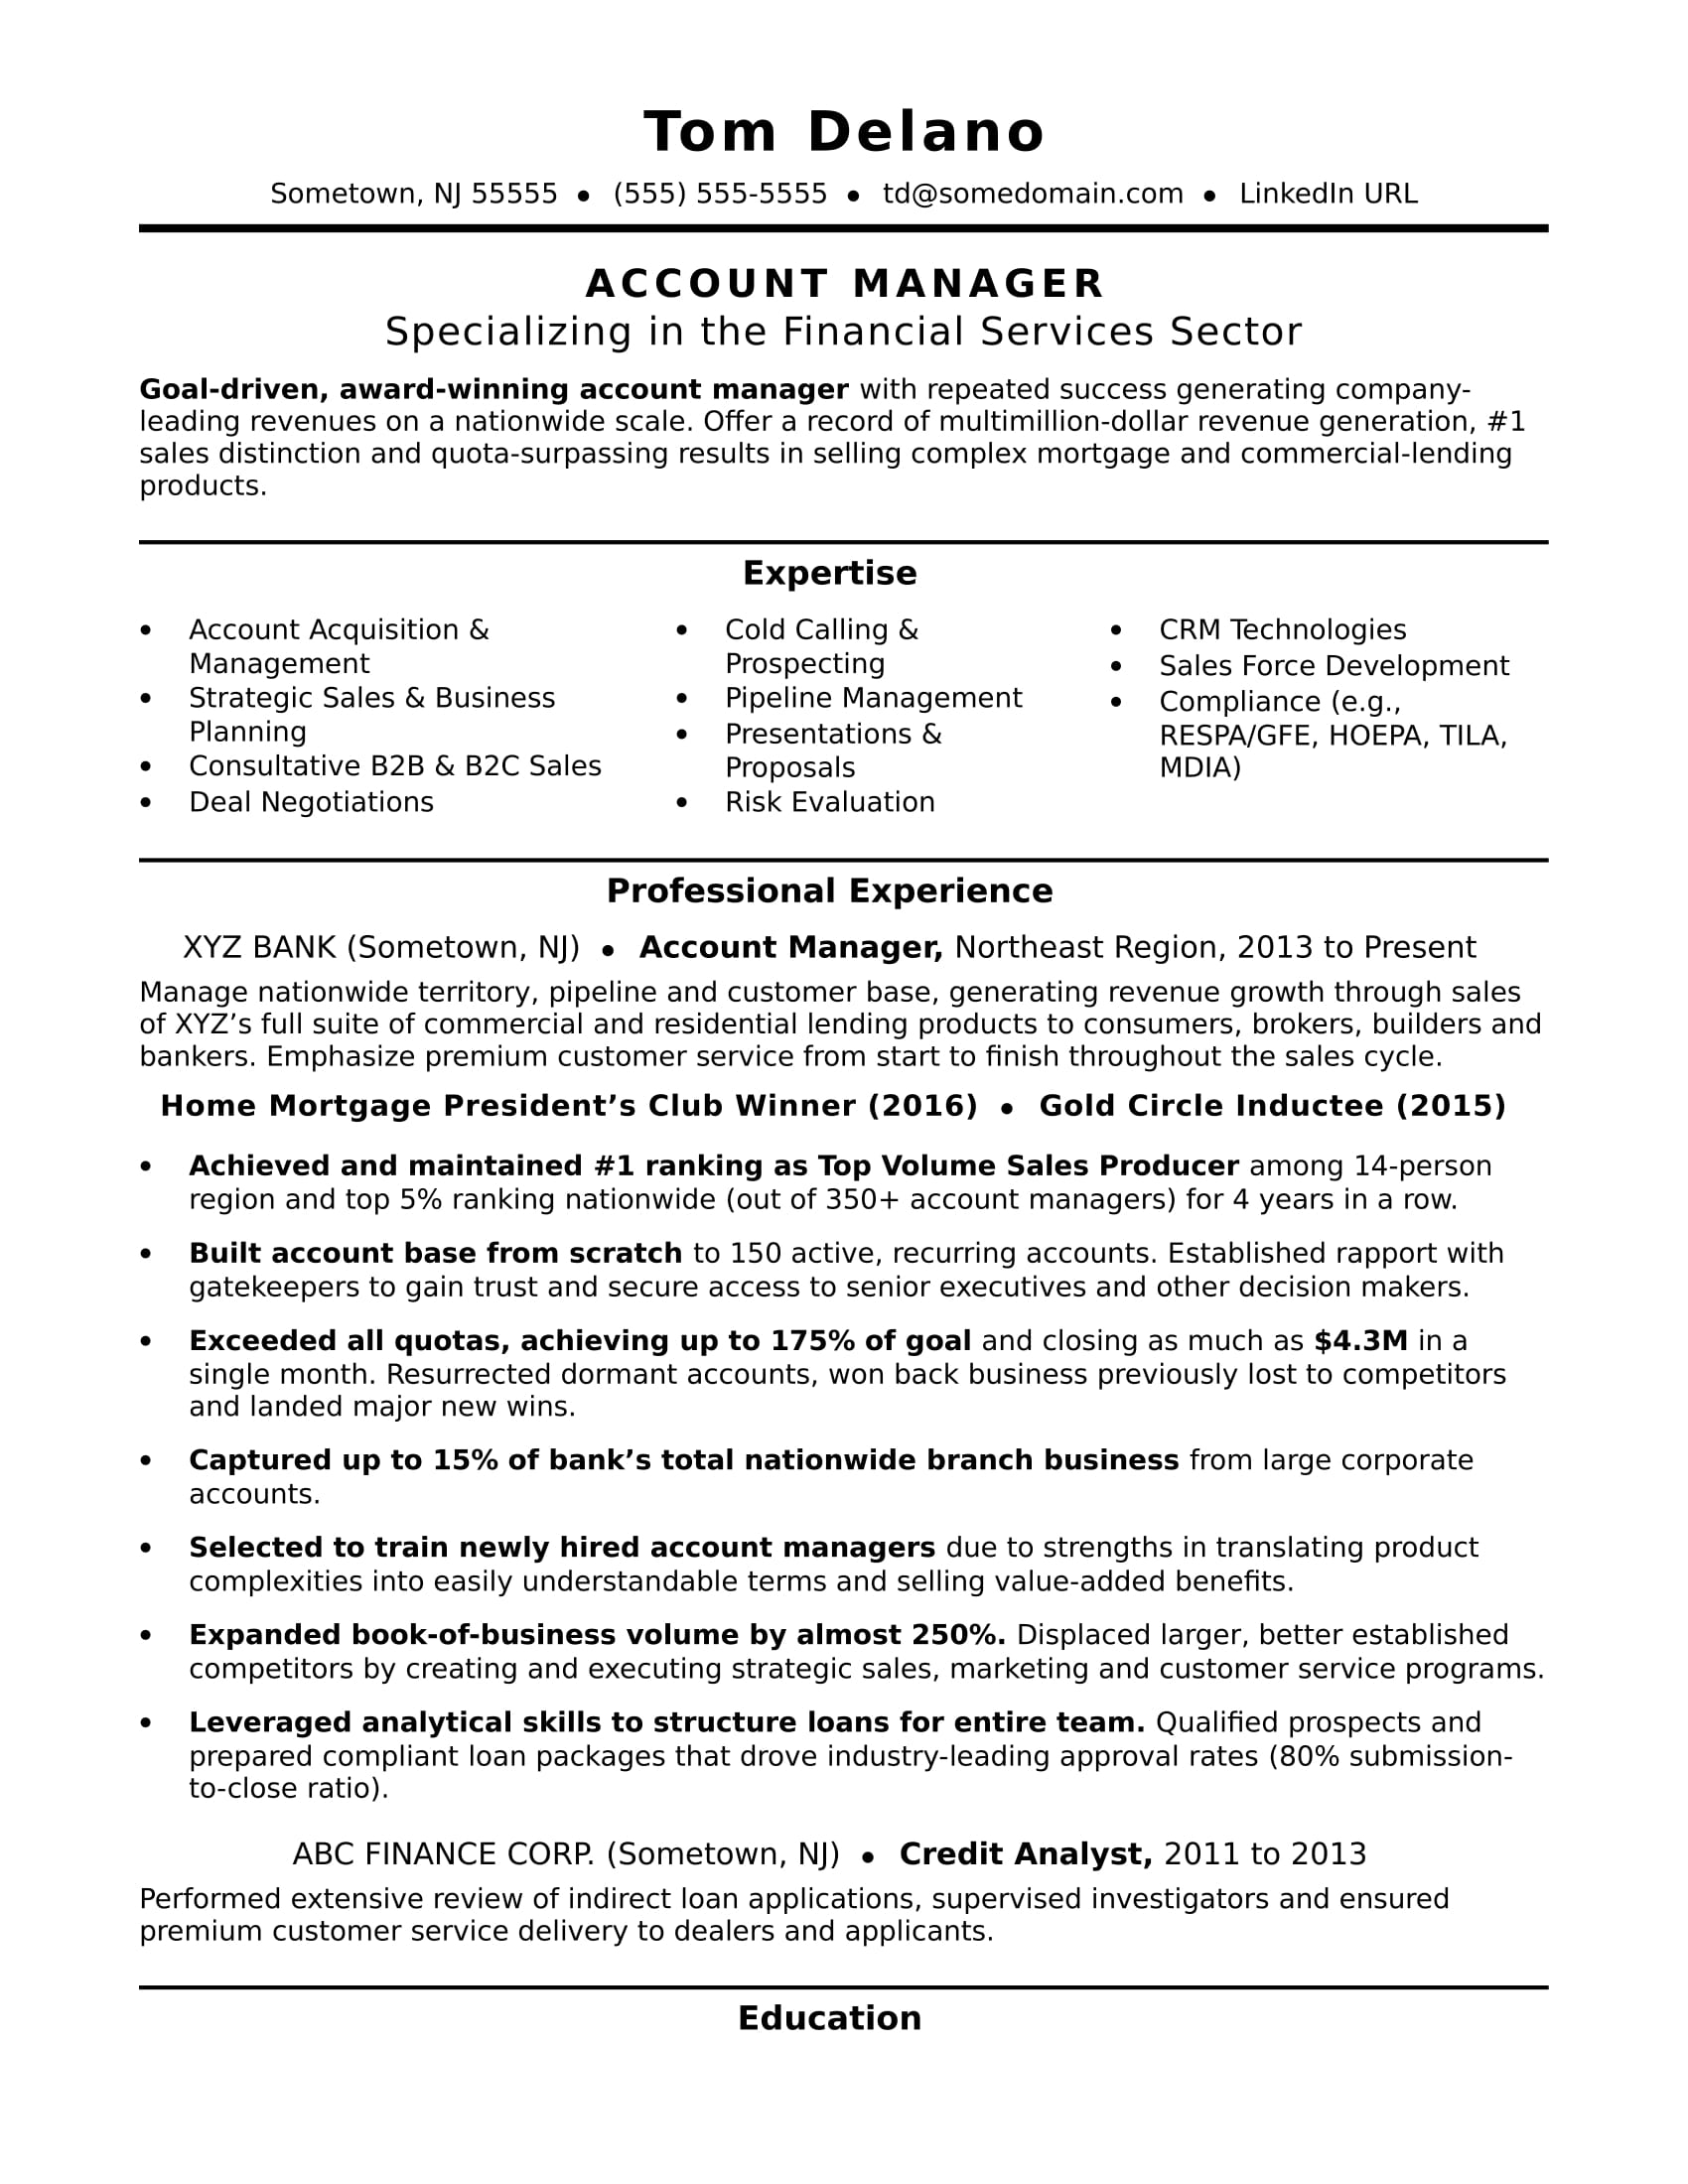 account manager resume sample | monster